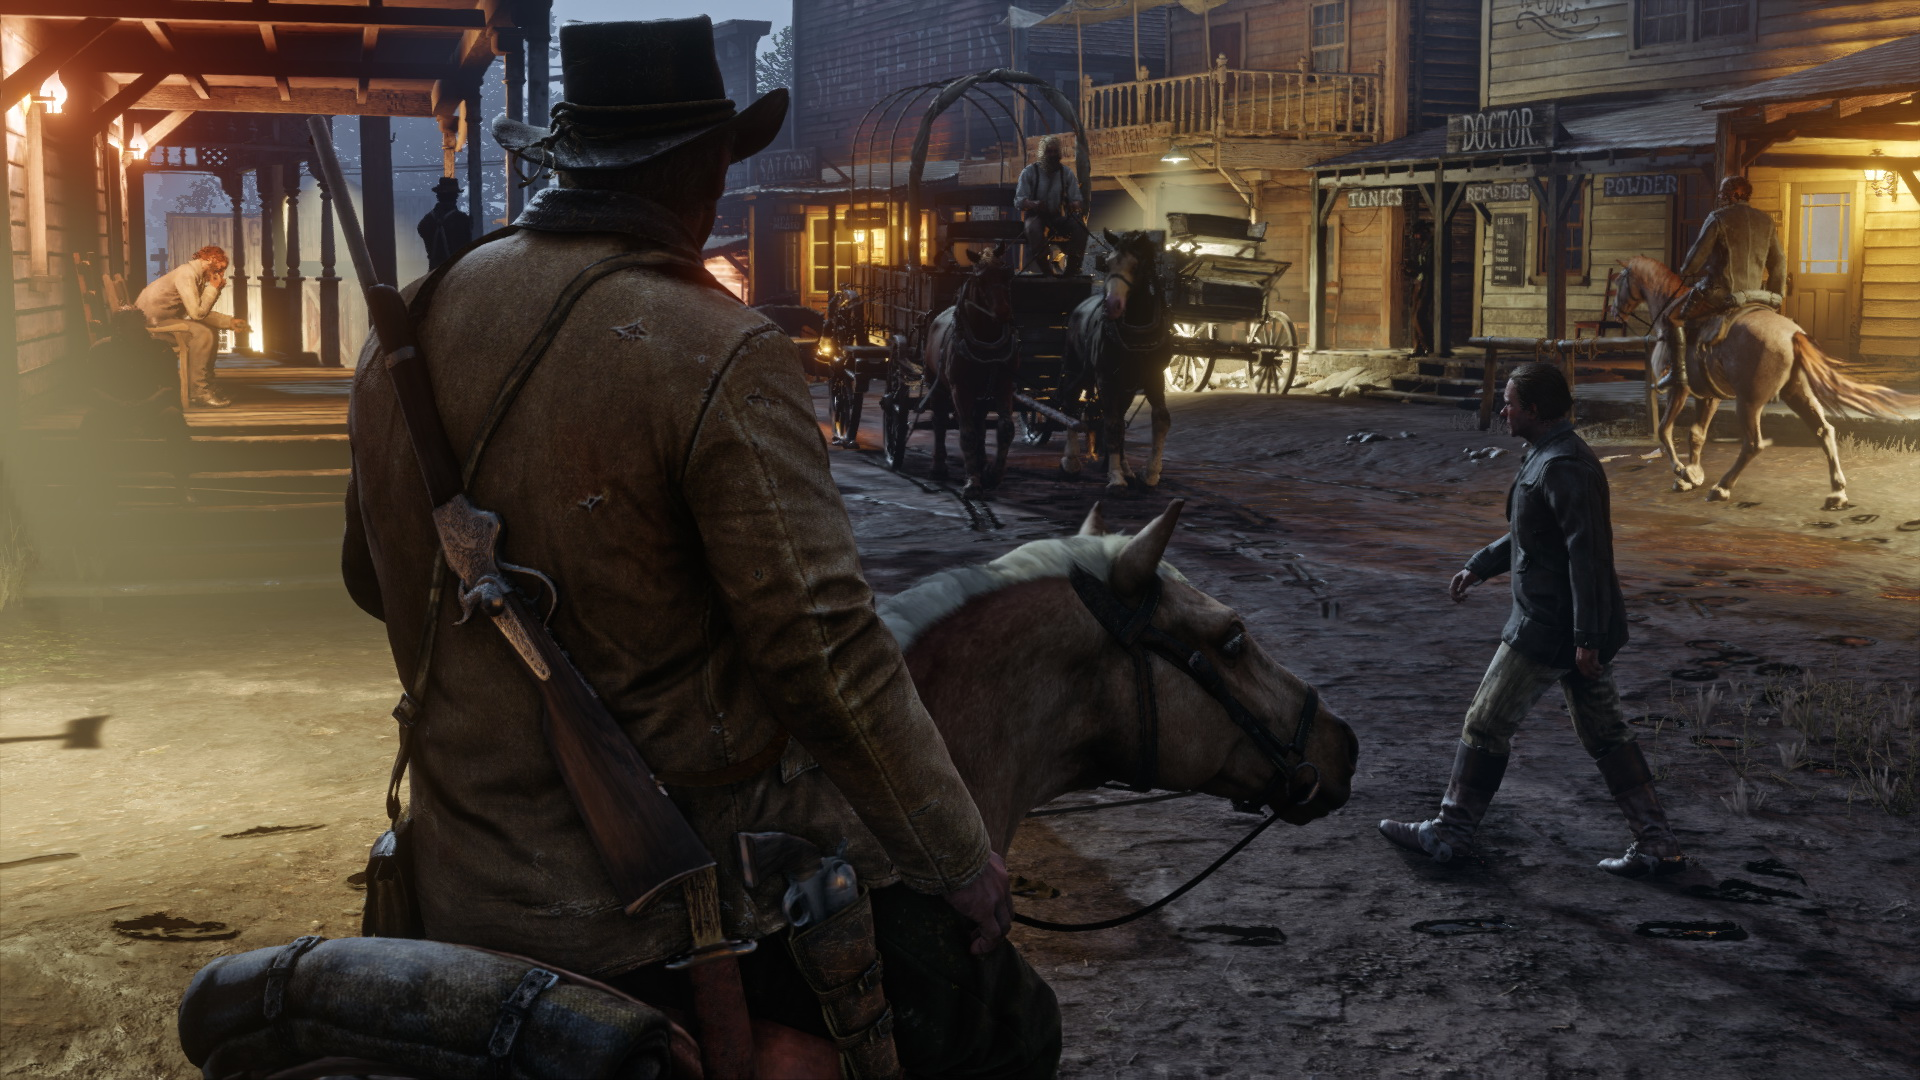 Updated red dead redemption 2 delayed to spring 2018 new gorgeous red dead redemption 2 publicscrutiny Images